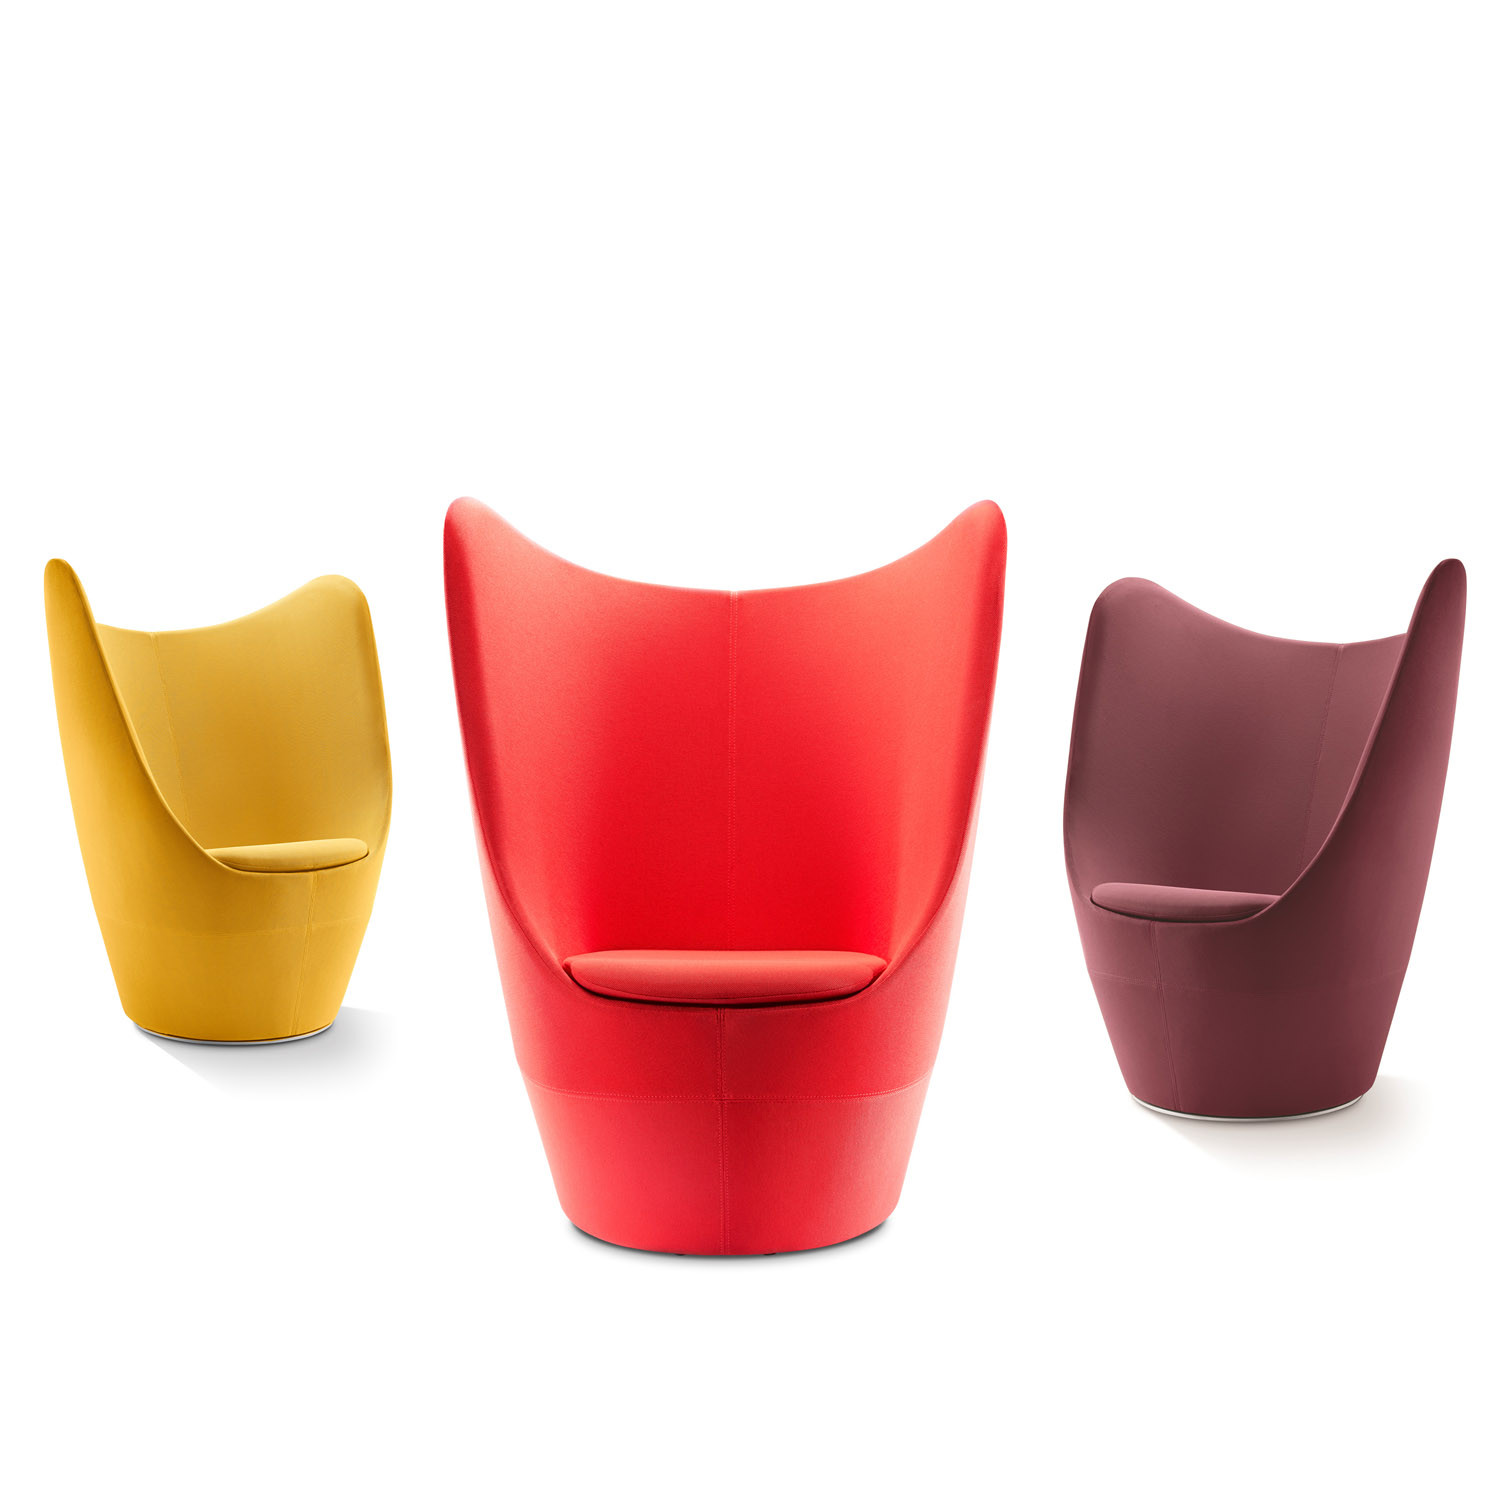 Dixi Tub Chairs for Agile Working